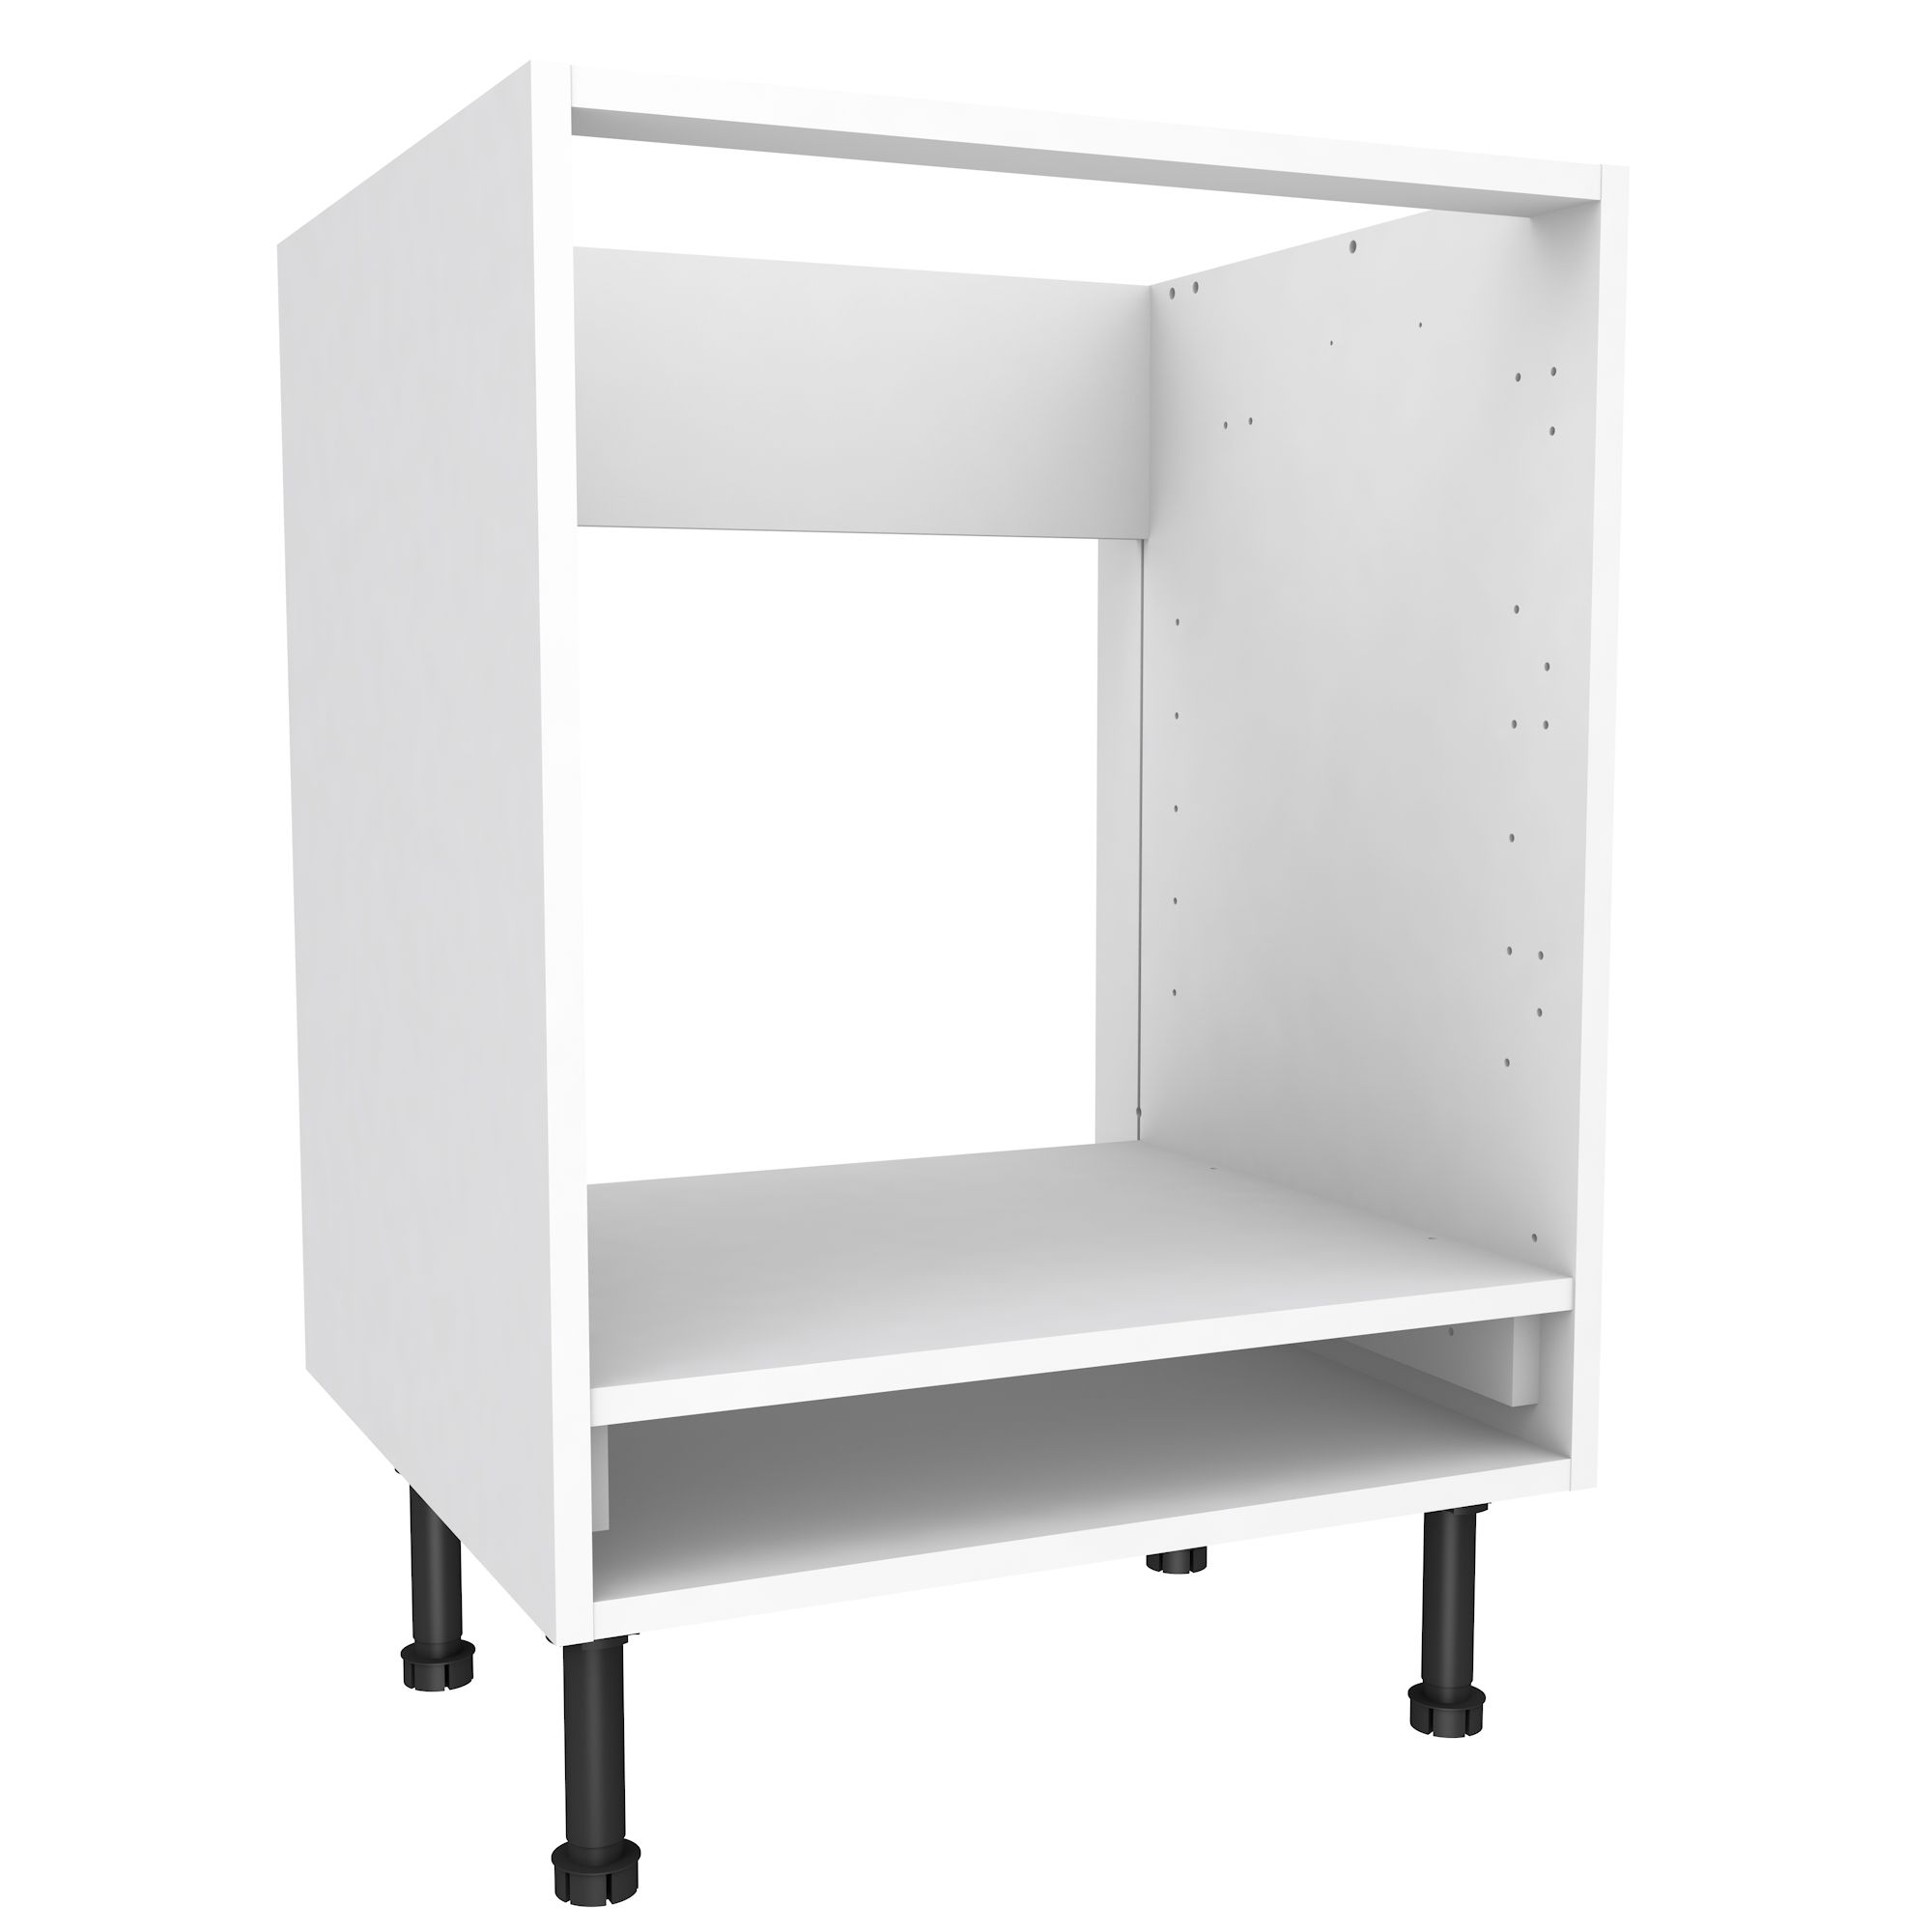 Superieur Cooke Lewis White Oven Housing Base Cabinet W 600mm